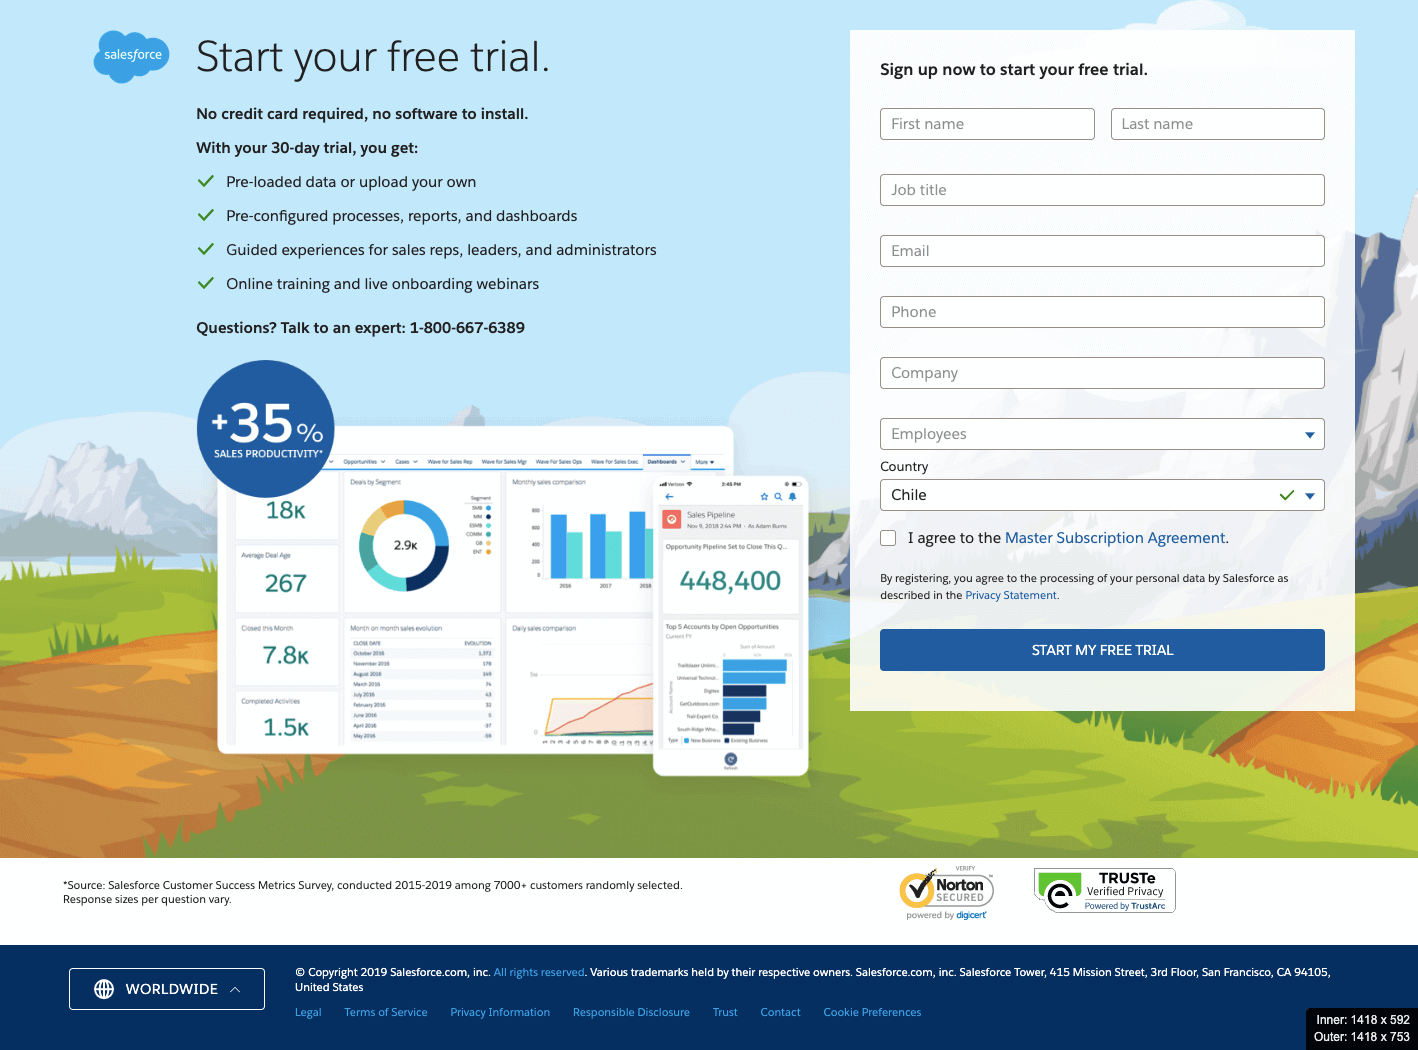 screencapture-salesforce-form-signup-freetrial-sales-2019-12-03-15_36_07